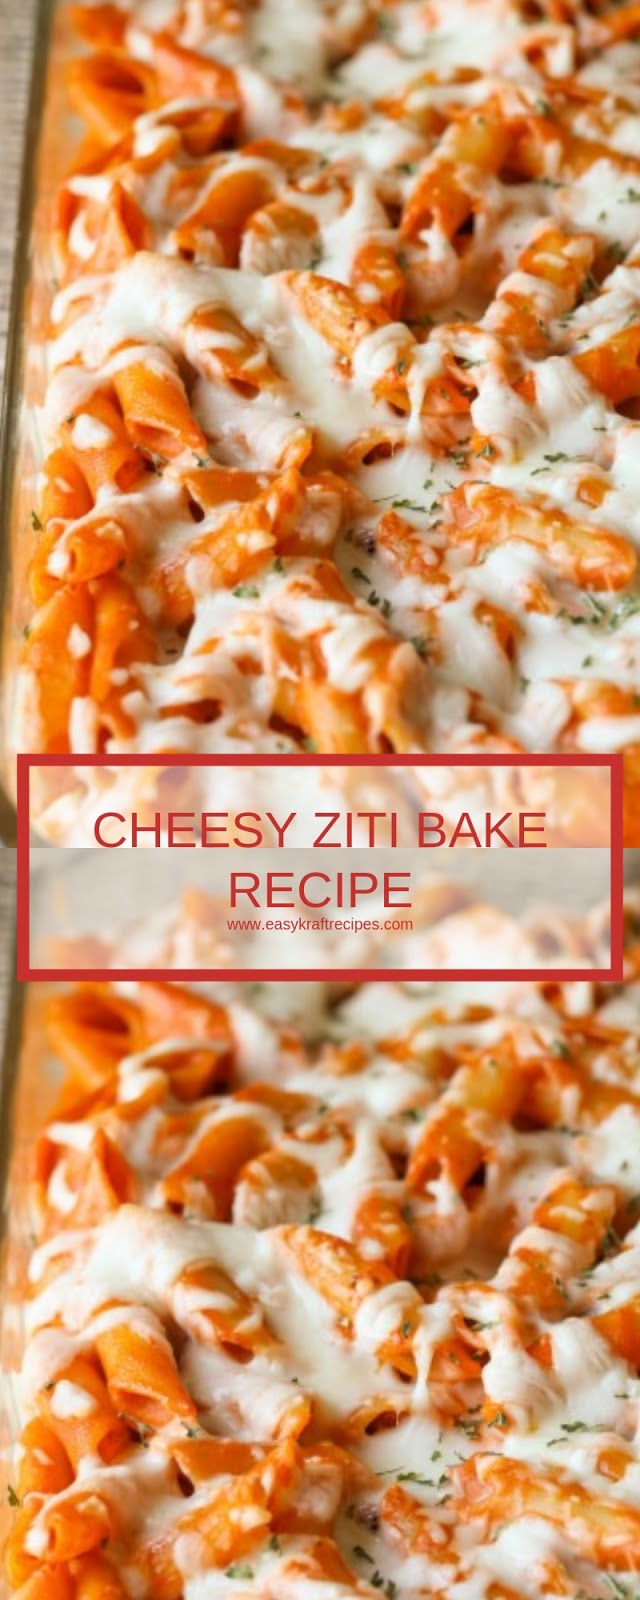 CHEESY ZITI BAKE RECIPE